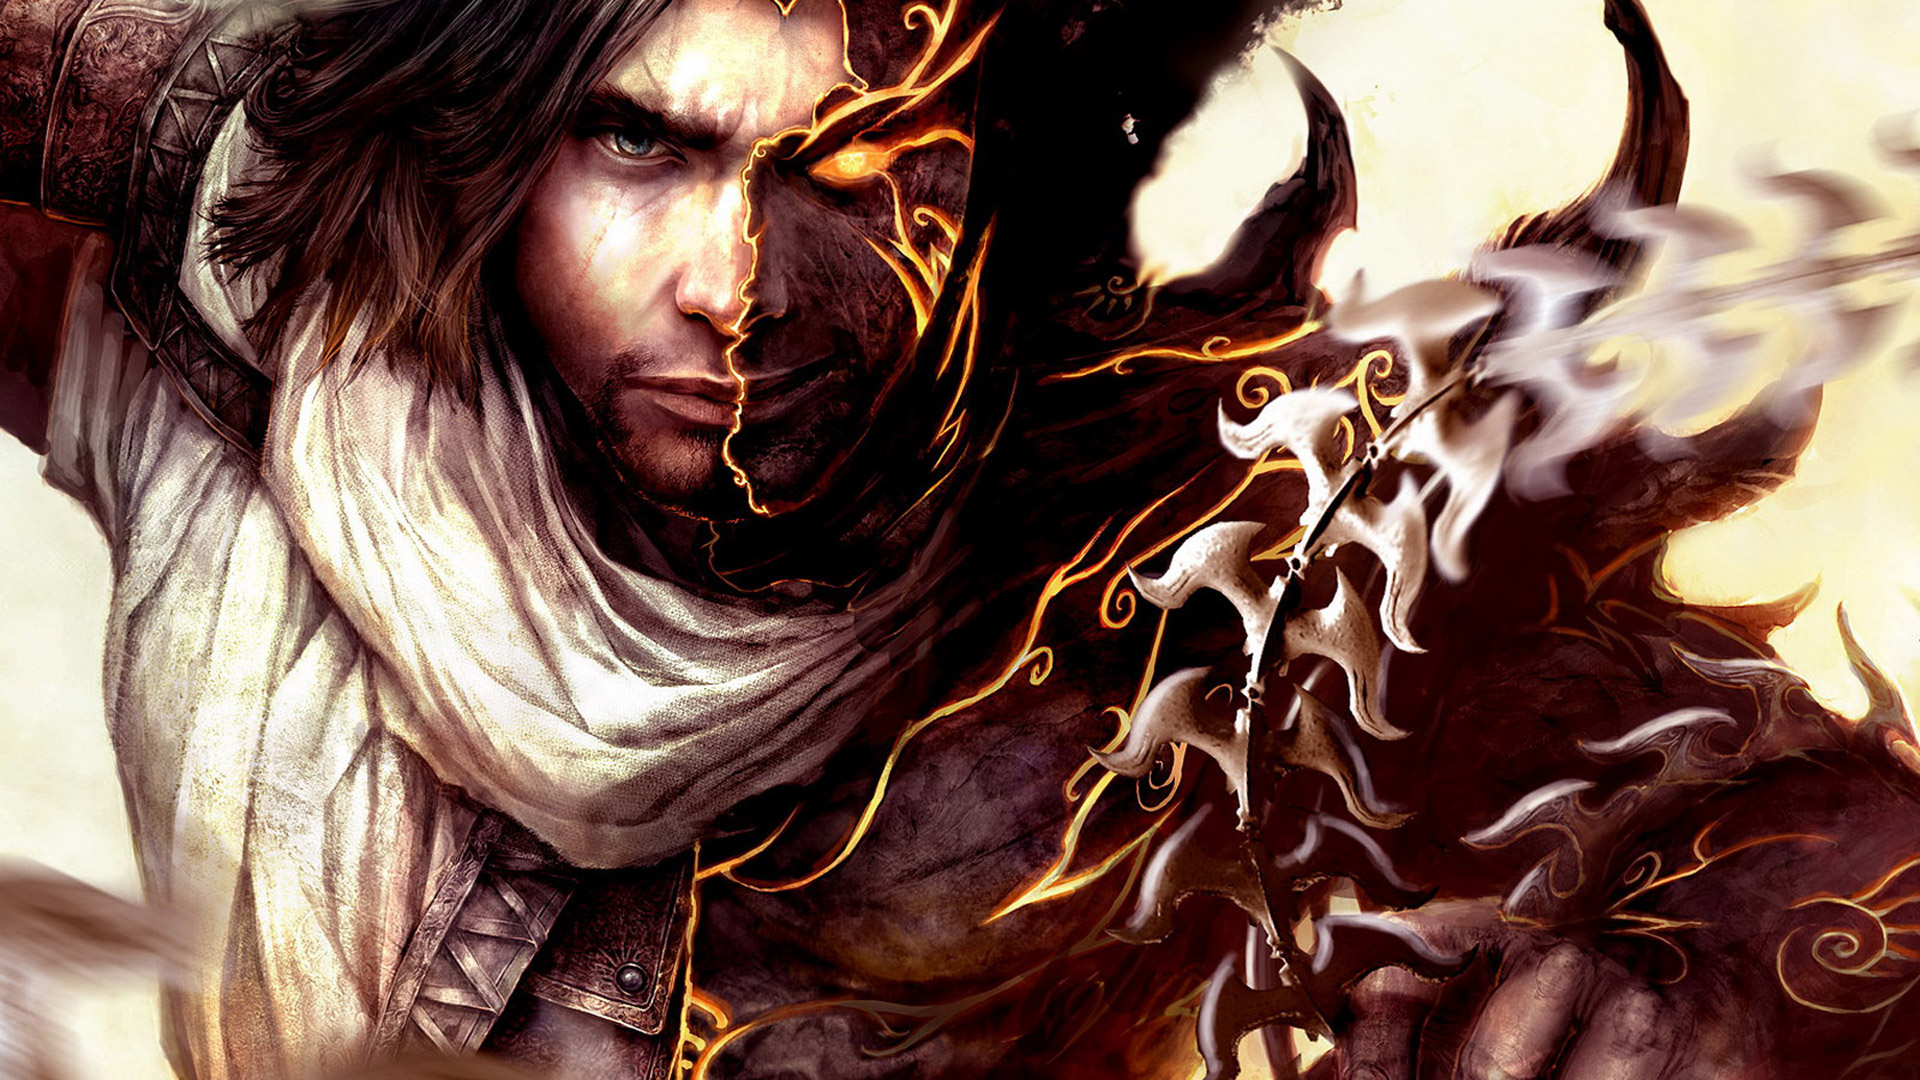 Free Prince of Persia: The Two Thrones Wallpaper in 1920x1080